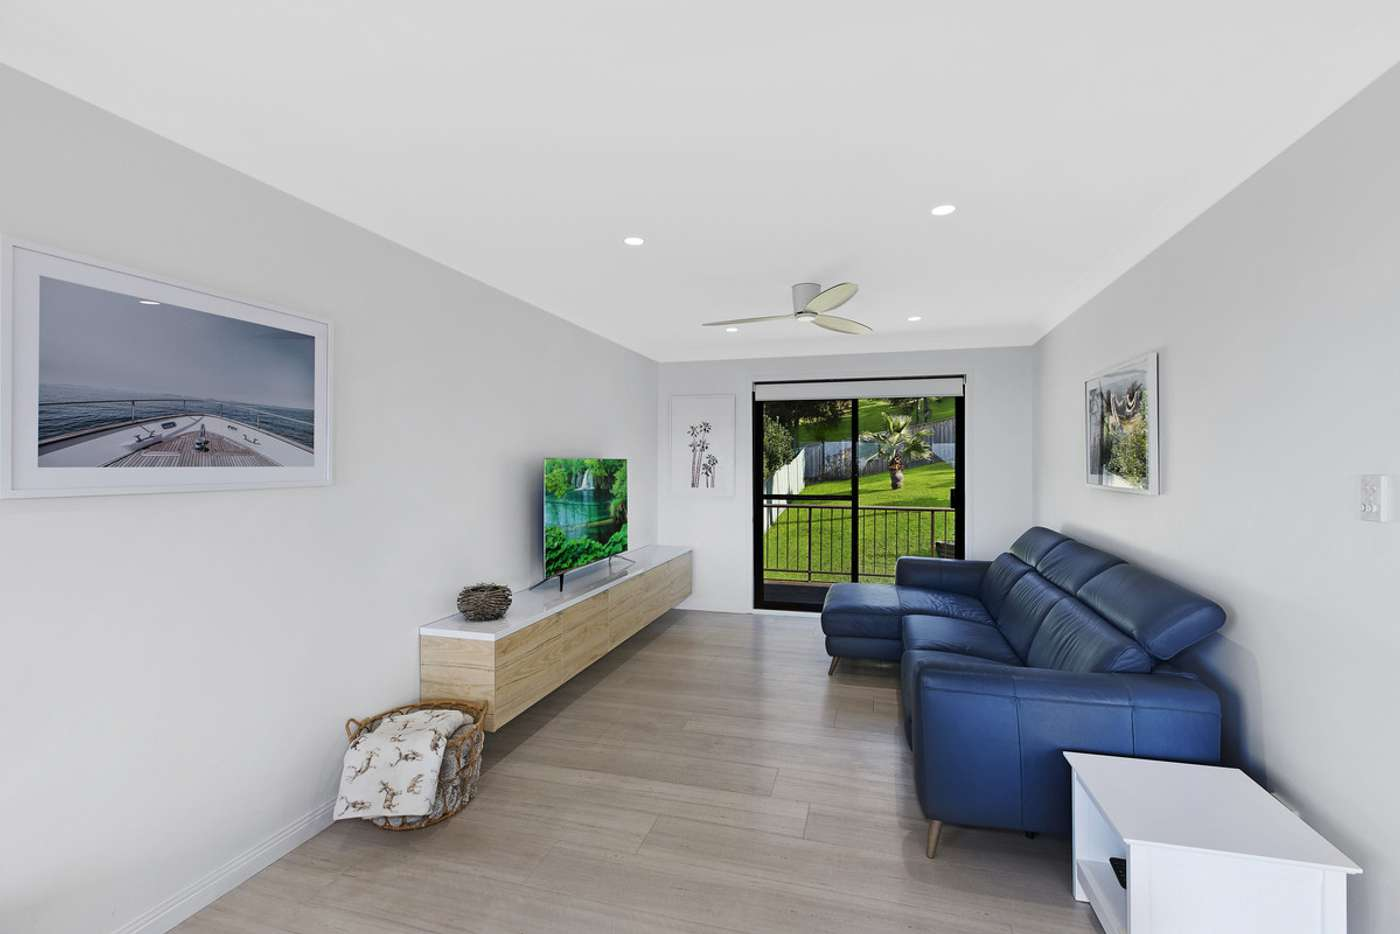 Fifth view of Homely house listing, 12 Keveer Close, Berkeley Vale NSW 2261